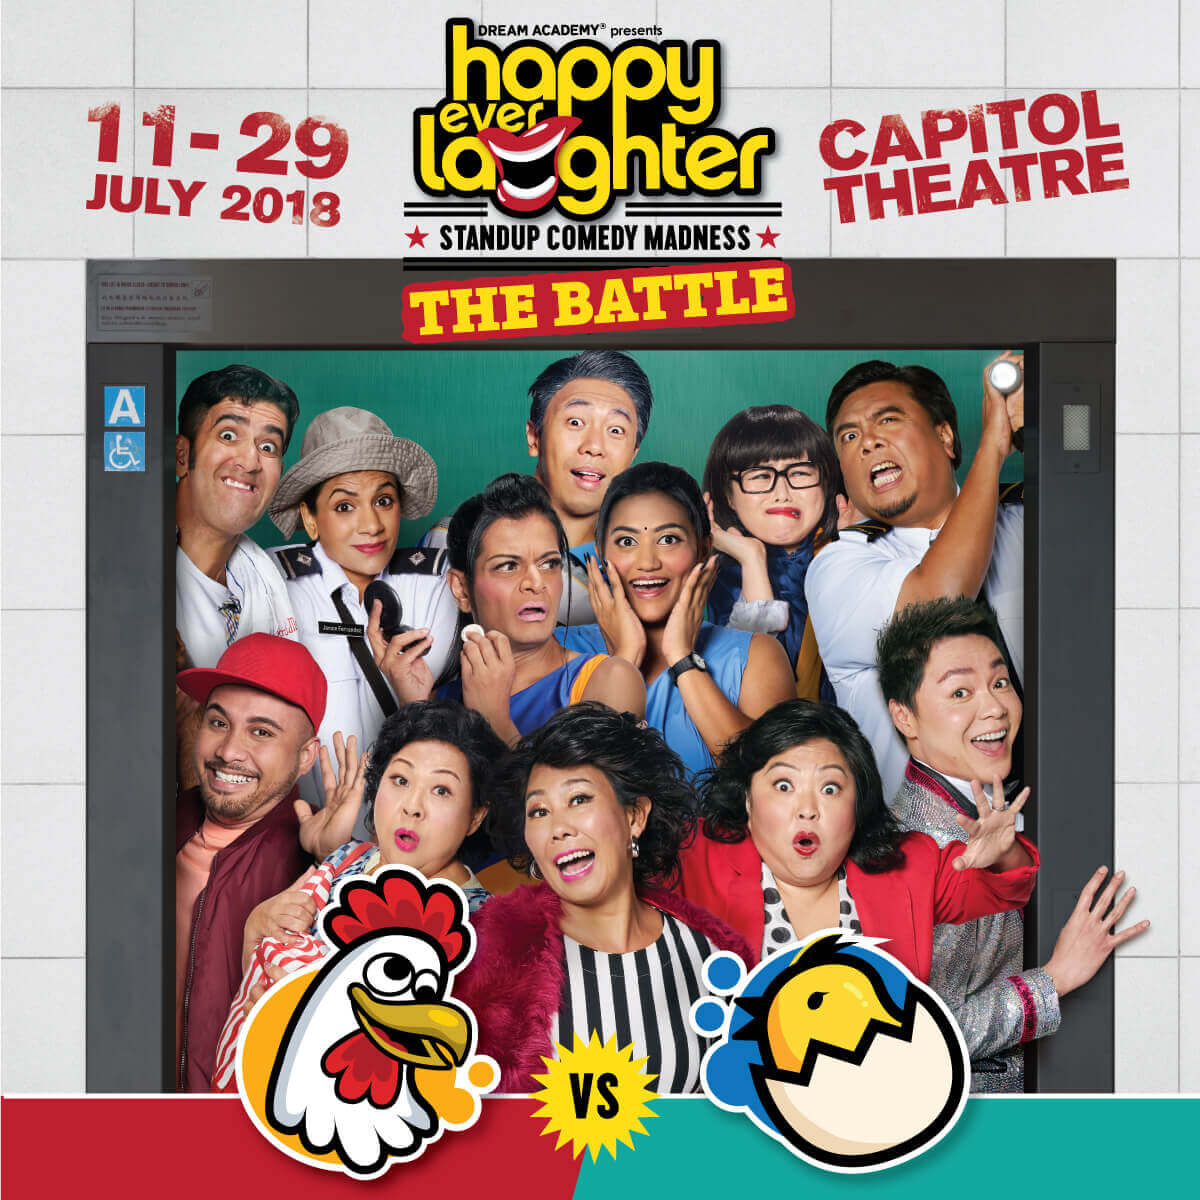 [Exclusive] Happy Ever Laughter - Watch Singapore's Top Comedians Battle It Out!